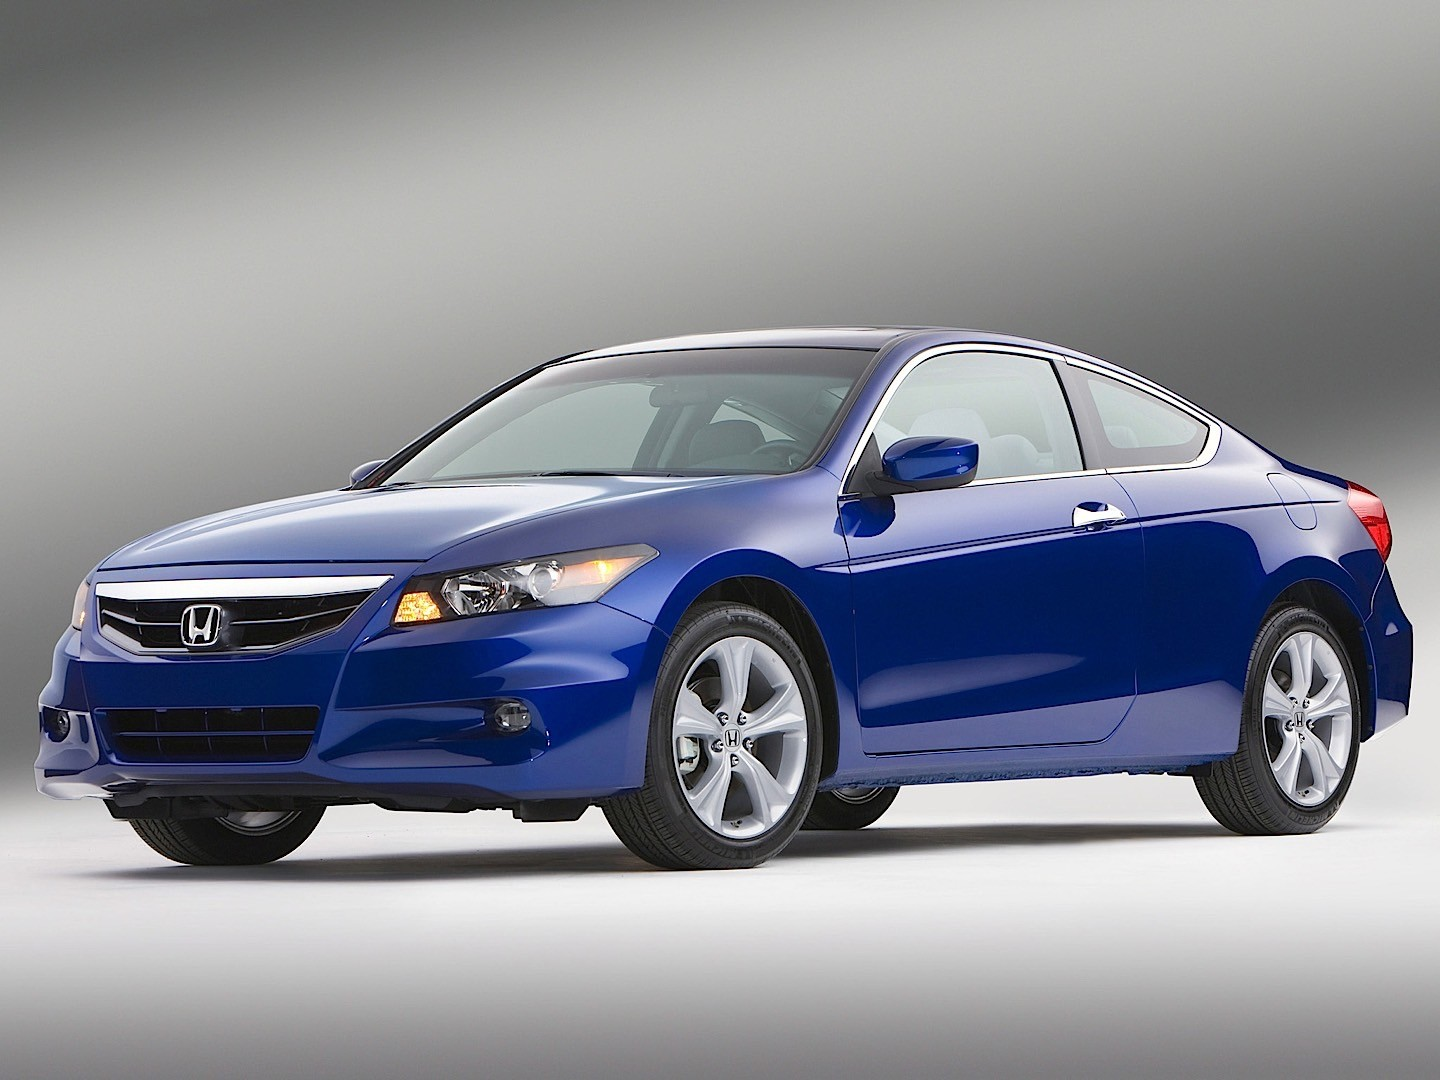 Honda 1.5 Turbo Engine Reliability >> HONDA Accord Coupe US specs & photos - 2008, 2009, 2010, 2011, 2012, 2013, 2014, 2015, 2016 ...